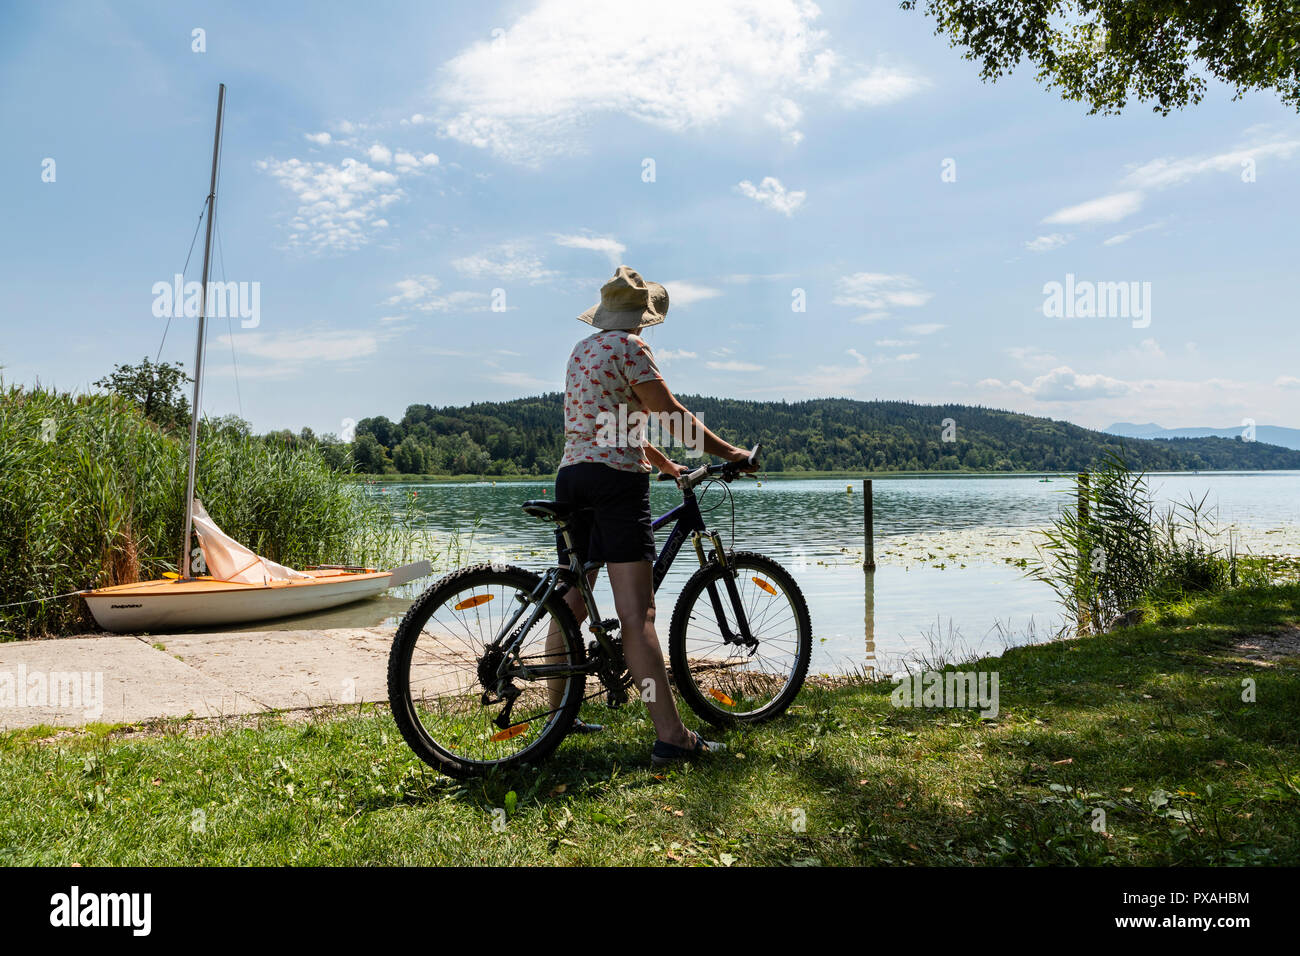 Cyclist at Tachinger See, Bavaria, Germany - Stock Image